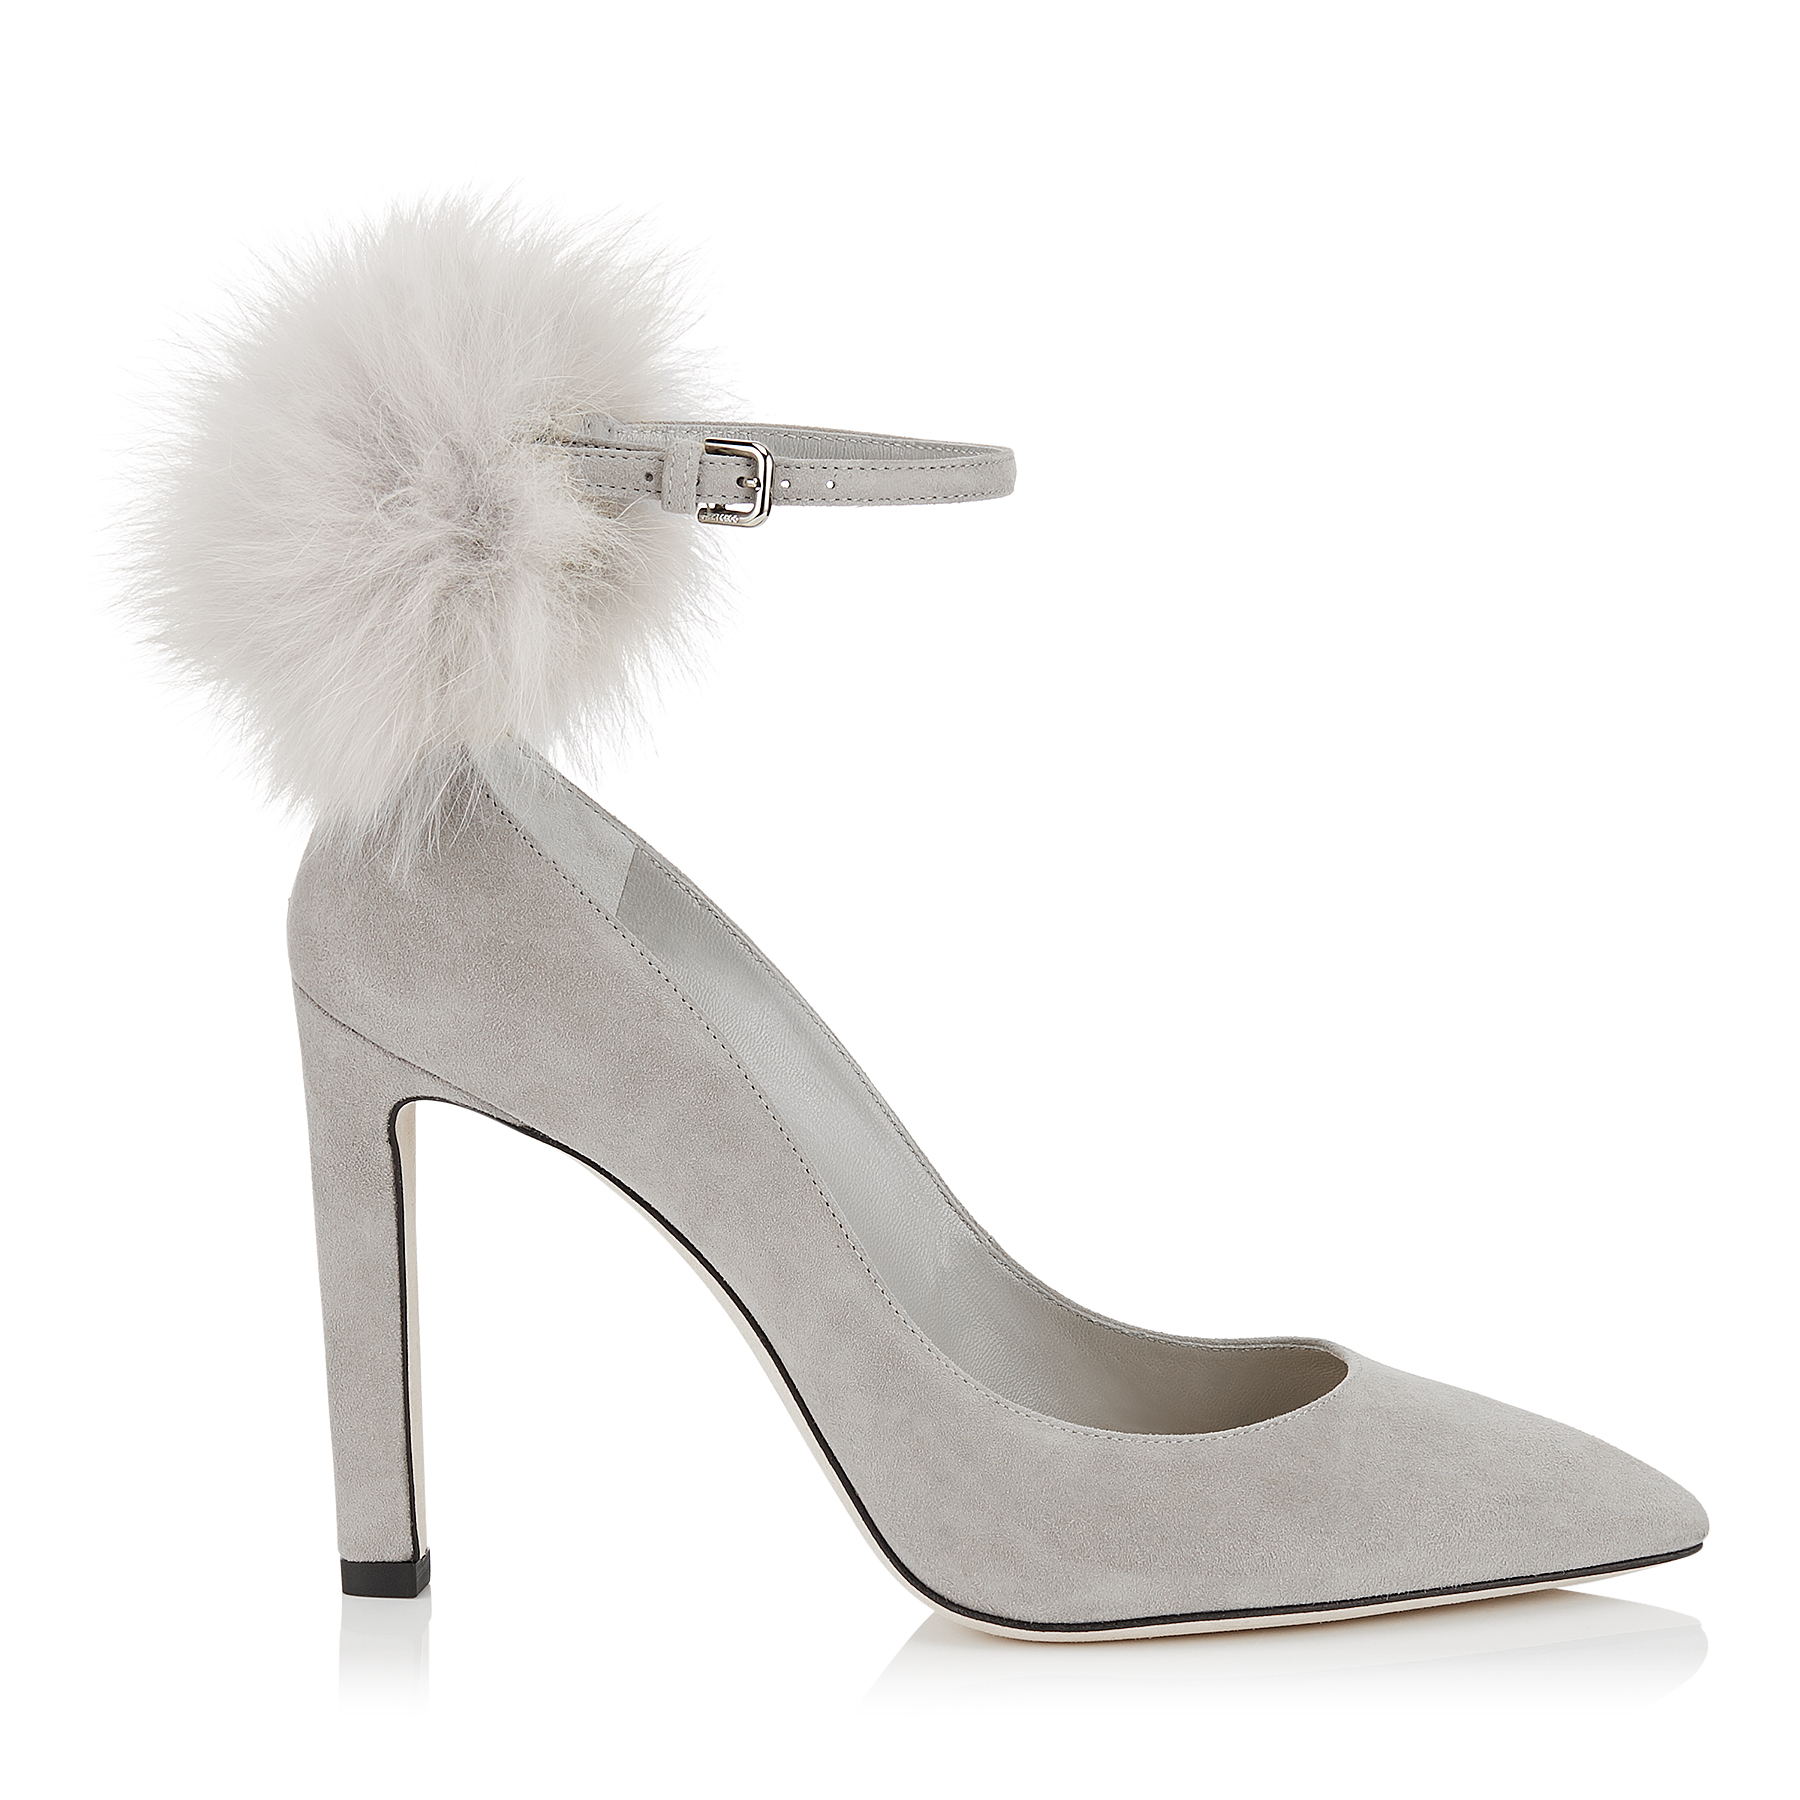 SOUTH 100 Moonstone Suede Pumps with White Fox Fur Pom Poms by Jimmy Choo